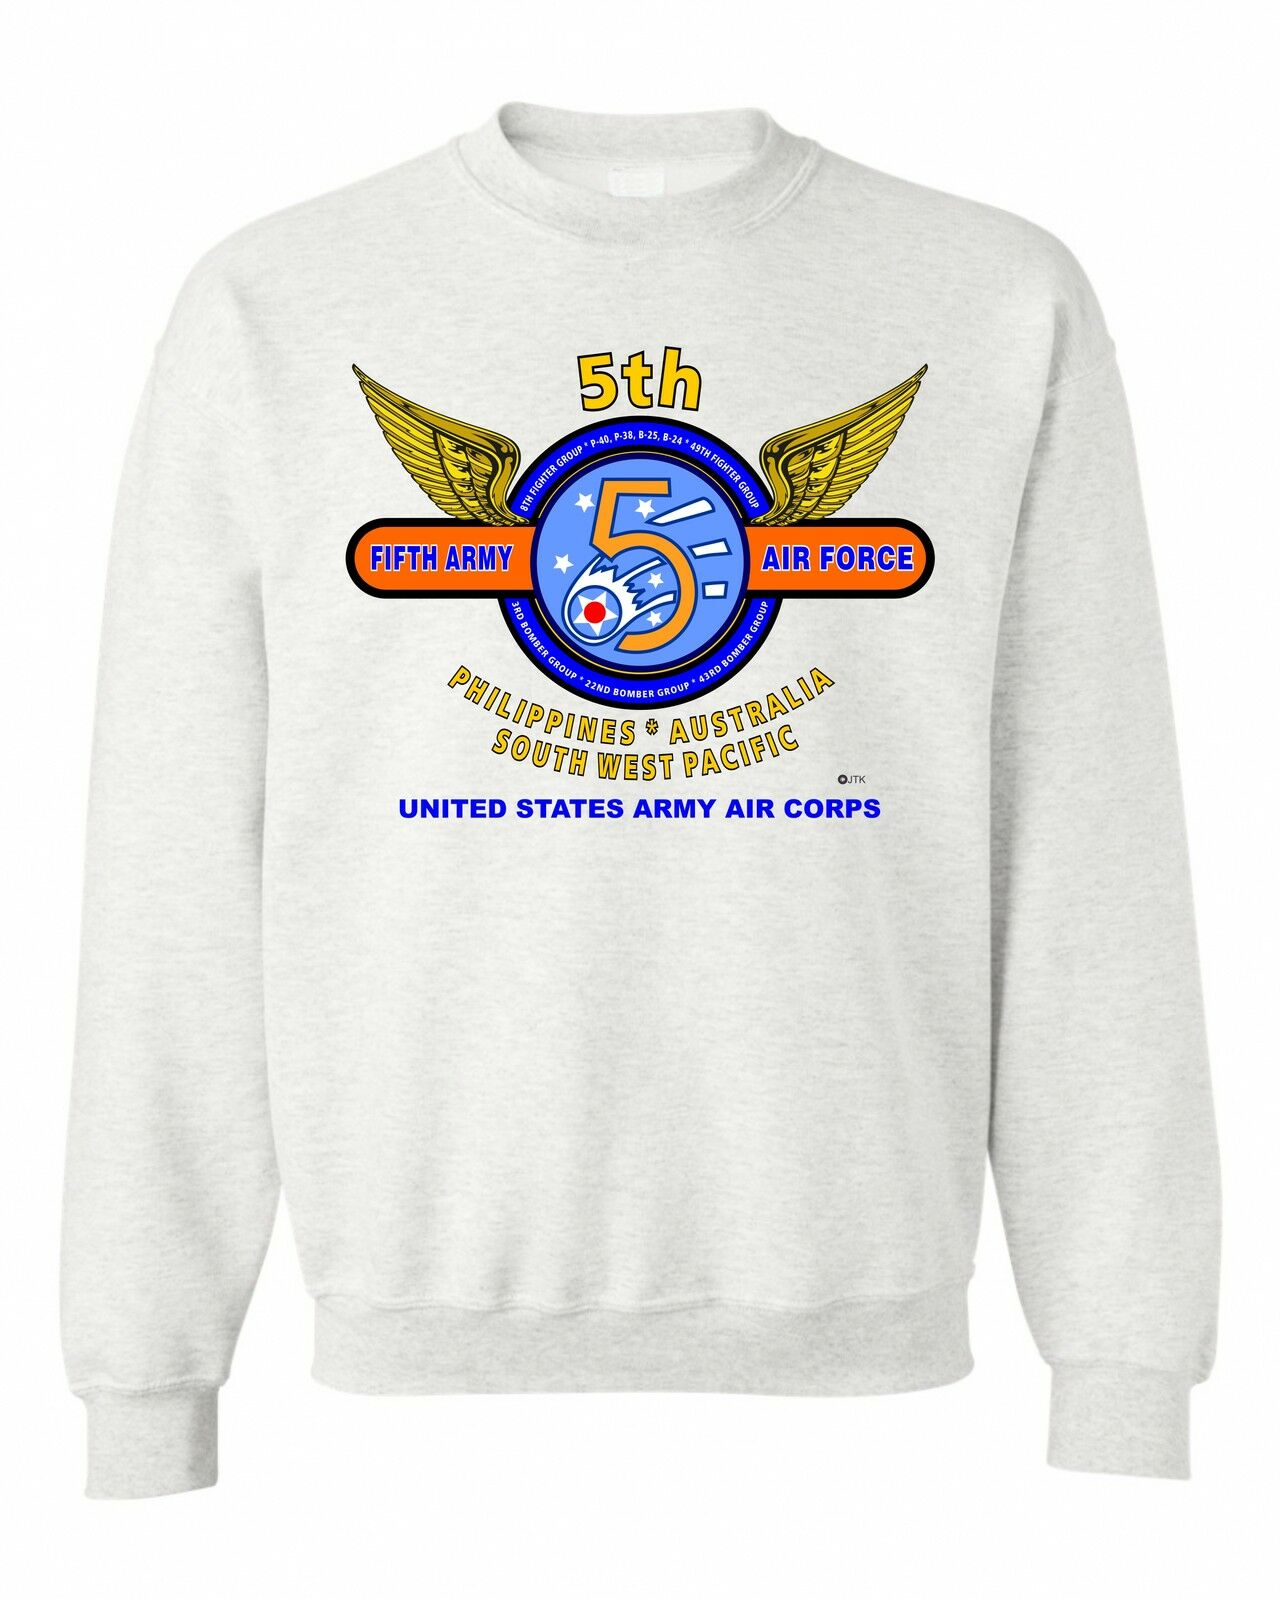 5TH ARMY AIR FORCE   PHILIPPINES-AUSTRALIA...    BATTLE & CAMPAIGN SWEATSHIRT